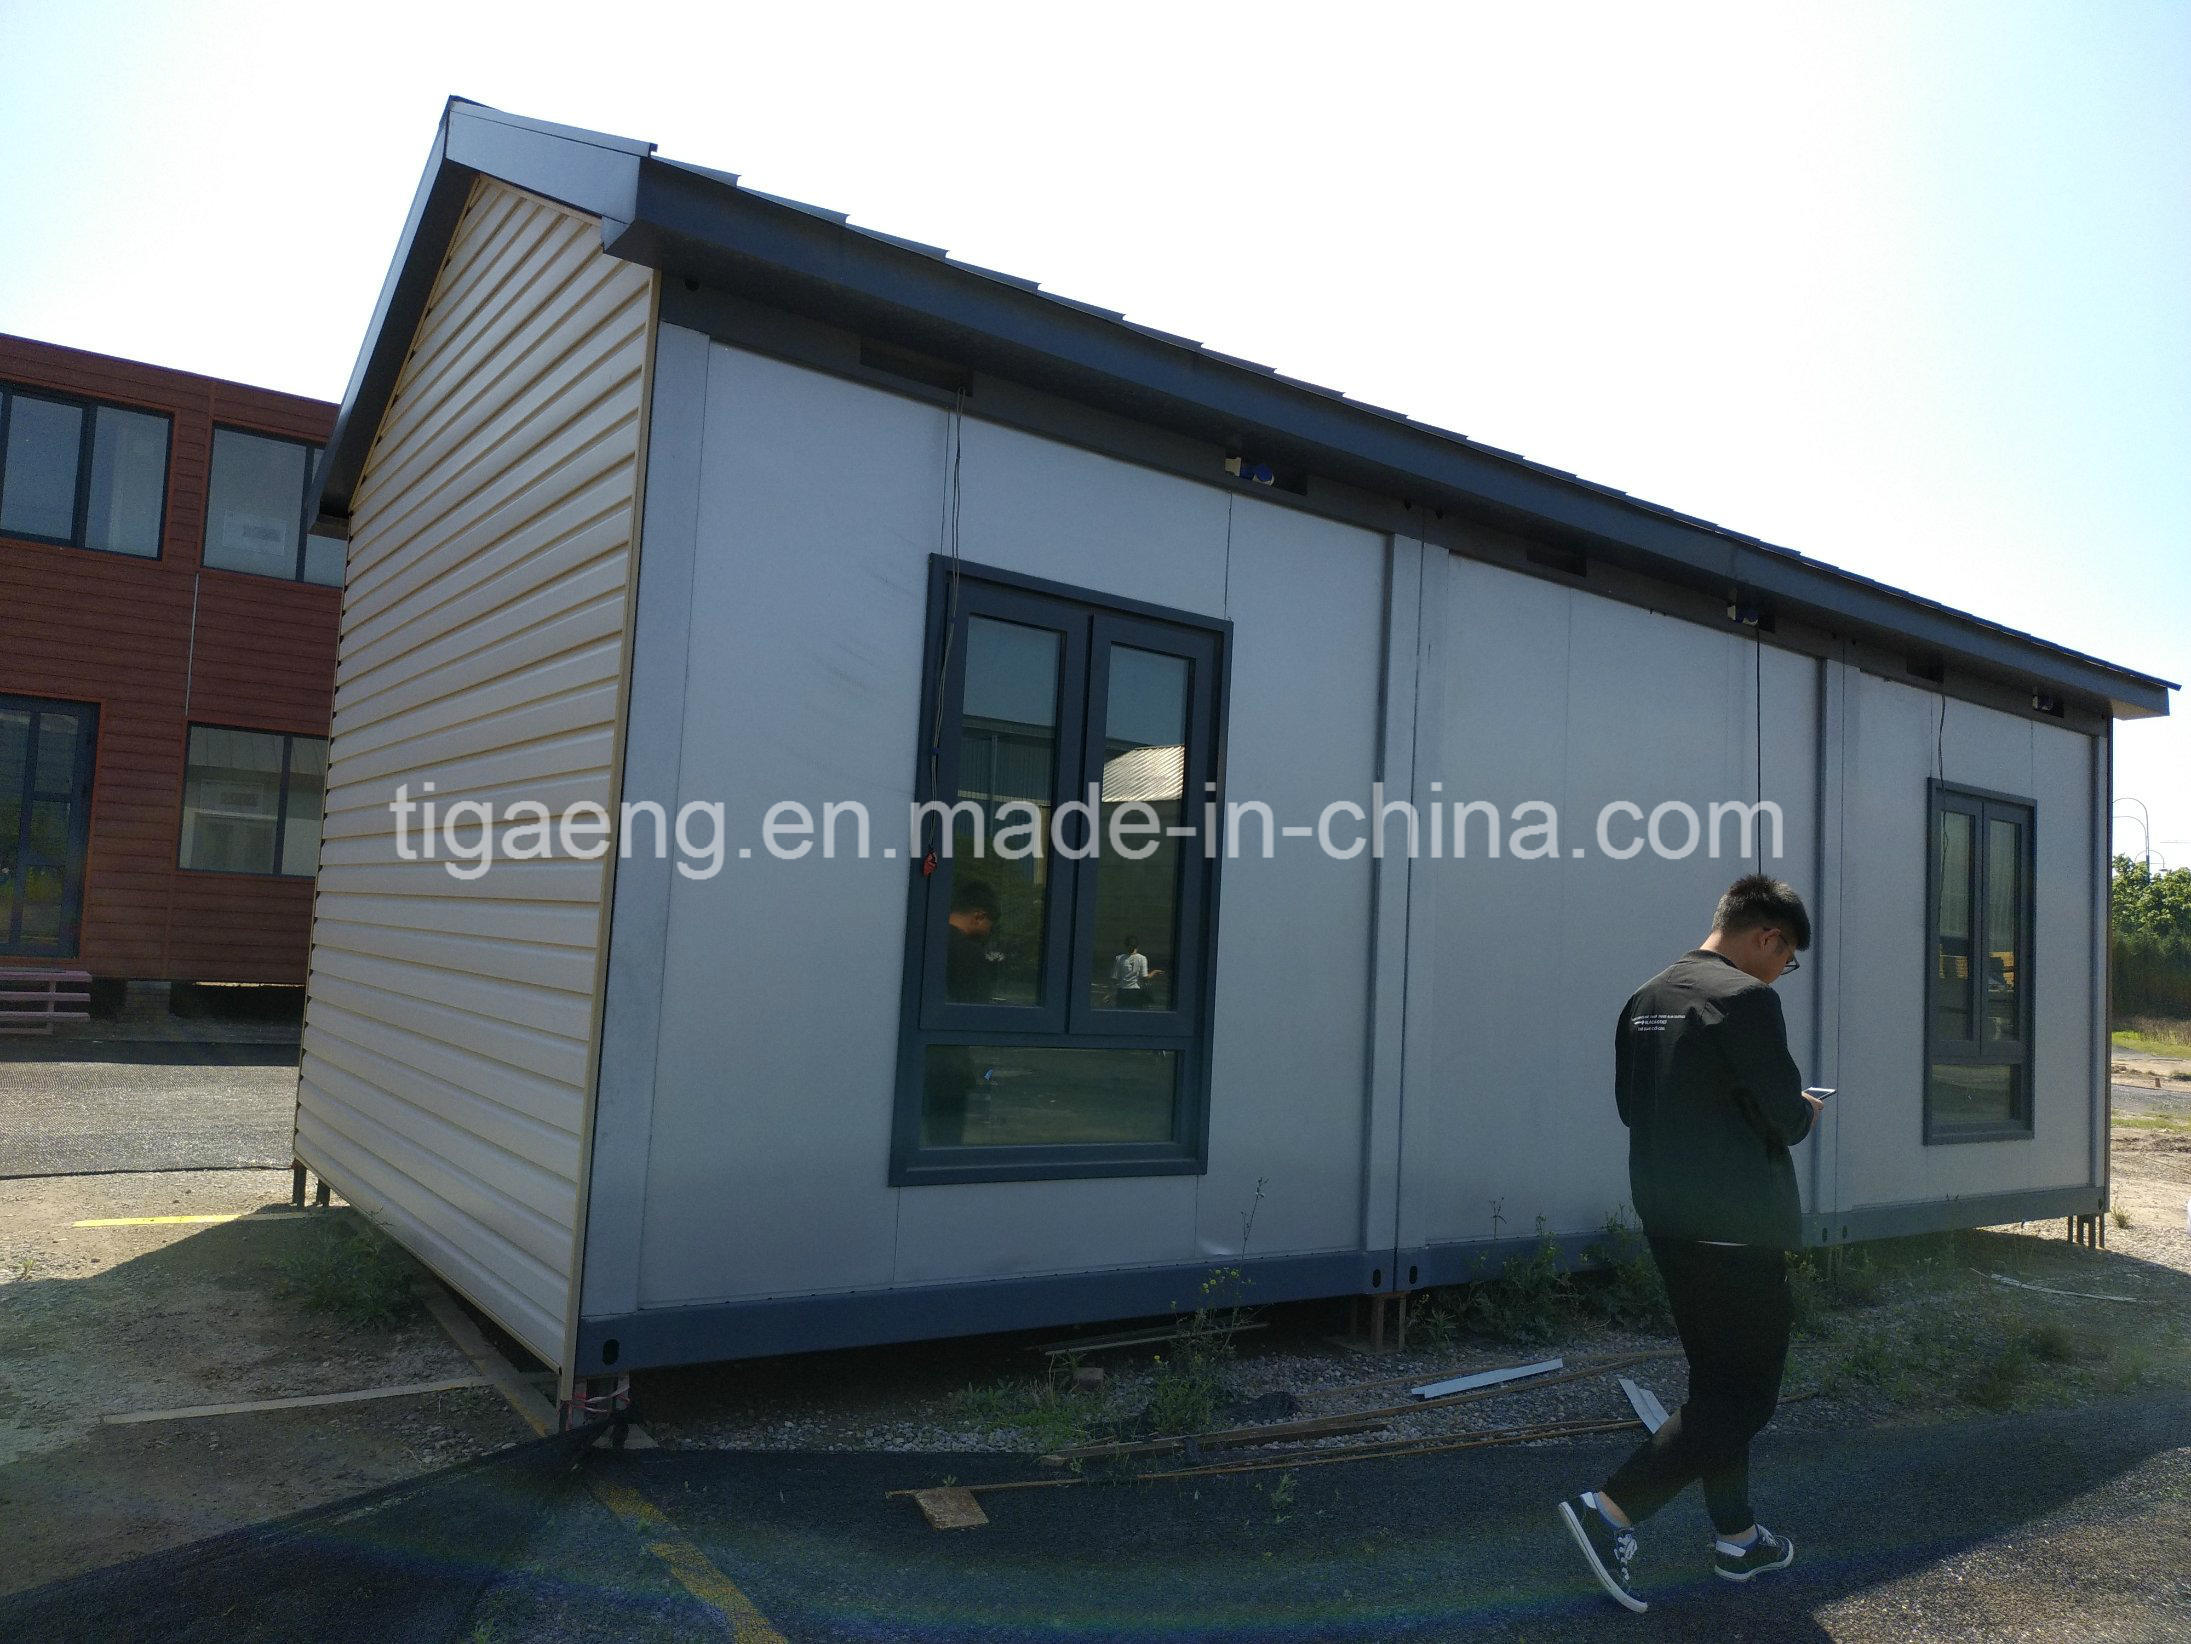 China Habitable Container, Habitable Container Manufacturers, Suppliers - Made In Chinacom